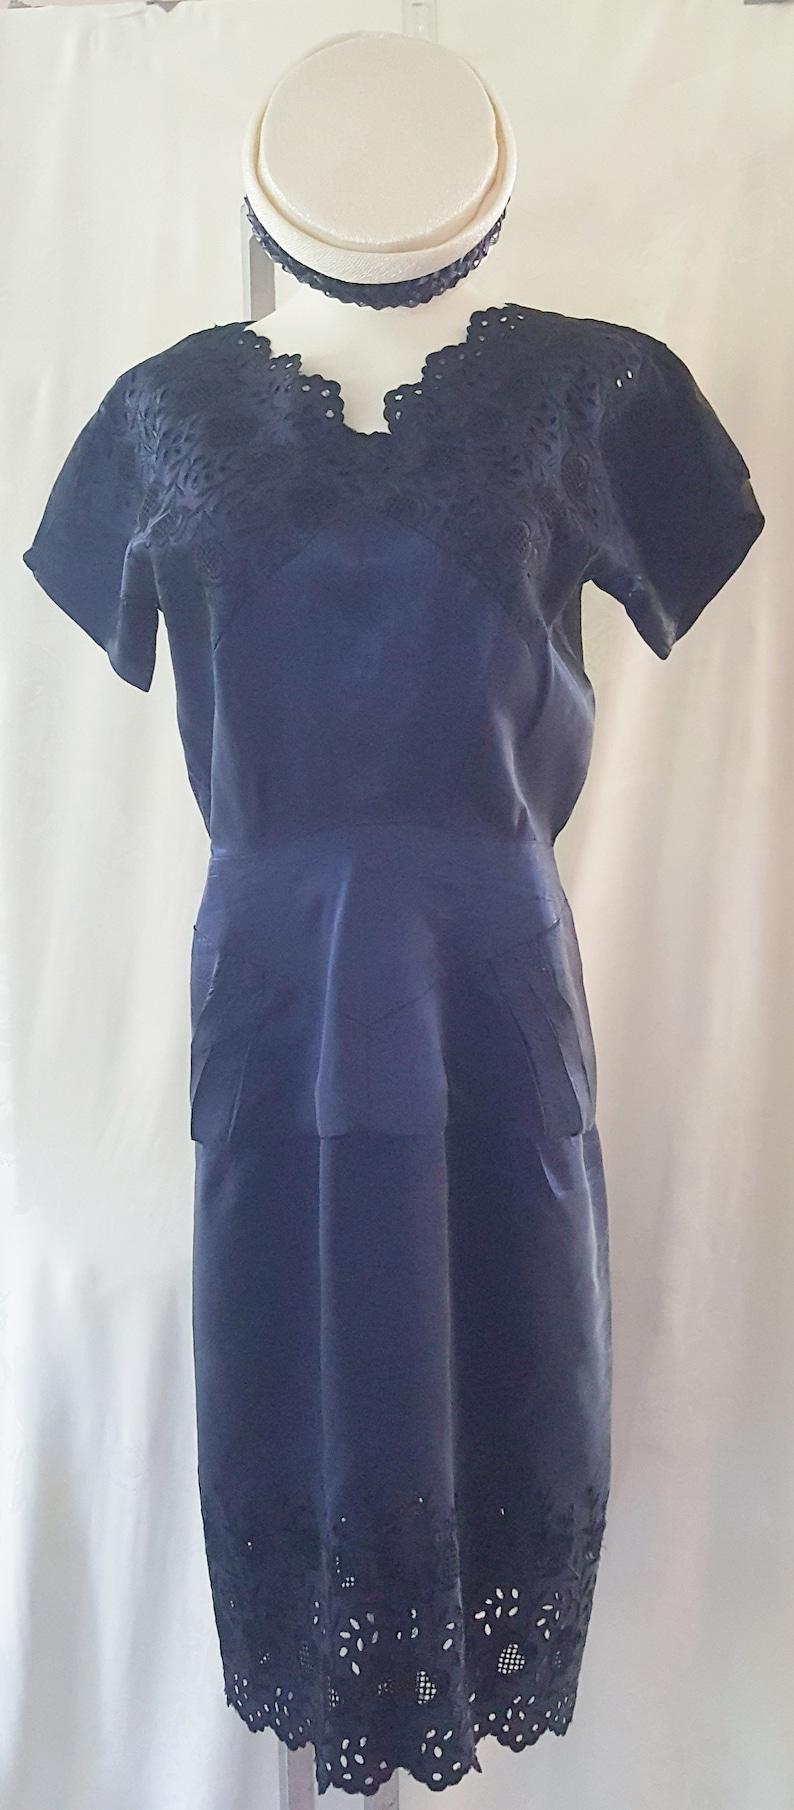 500 Vintage Style Dresses for Sale | Vintage Inspired Dresses 50s MIDNIGHT Blue DELIGHT!! 1940s - 50s  SophisticatedLaRue $118.00 AT vintagedancer.com